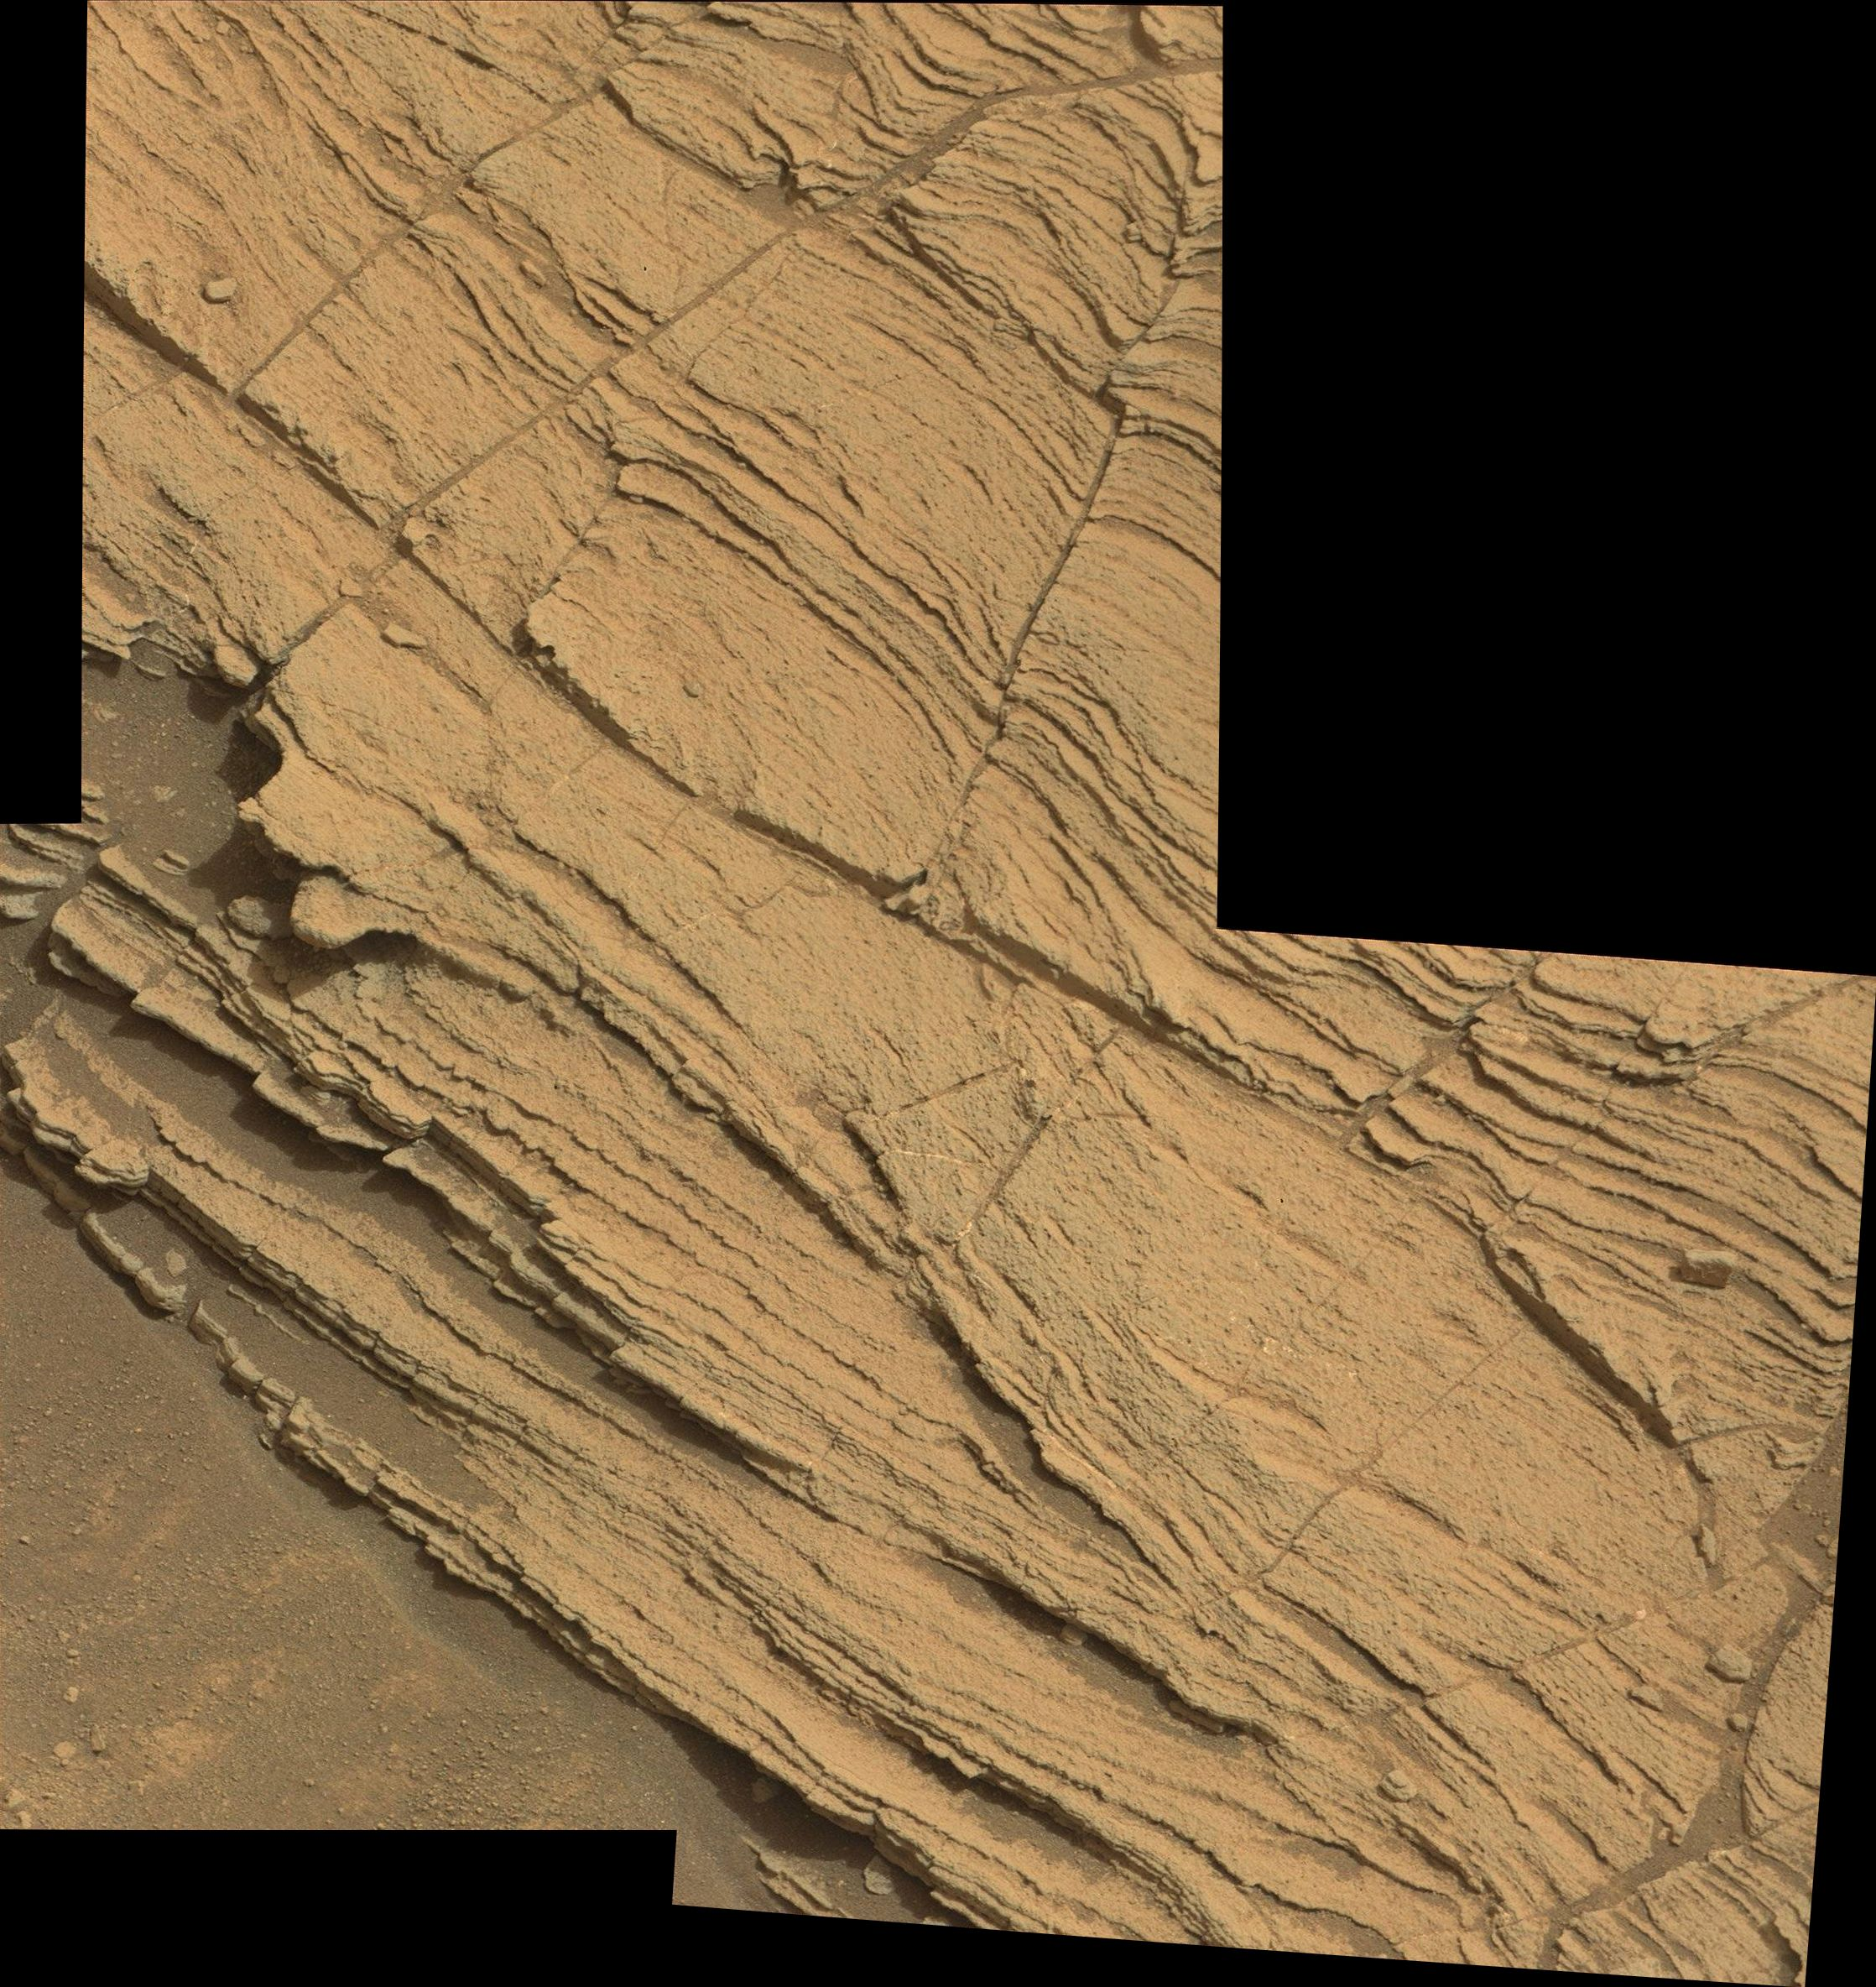 Mastcam 0828MR0036350510500646E01_DXXX_stitch